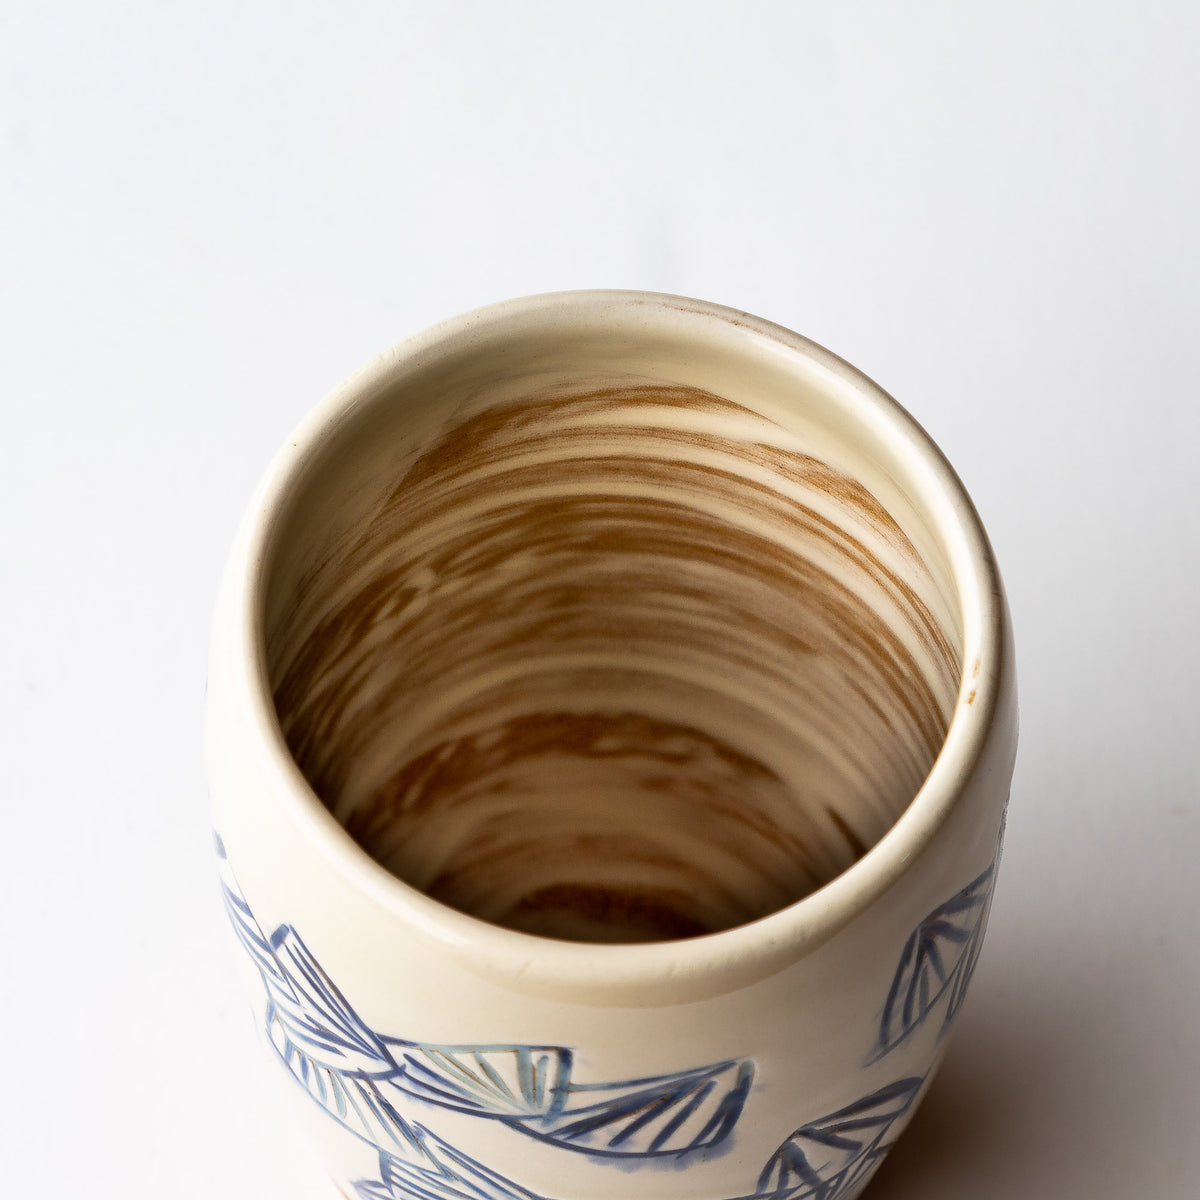 Interior View - Handmade Mishima Espresso Cup With Folding Fan Pattern